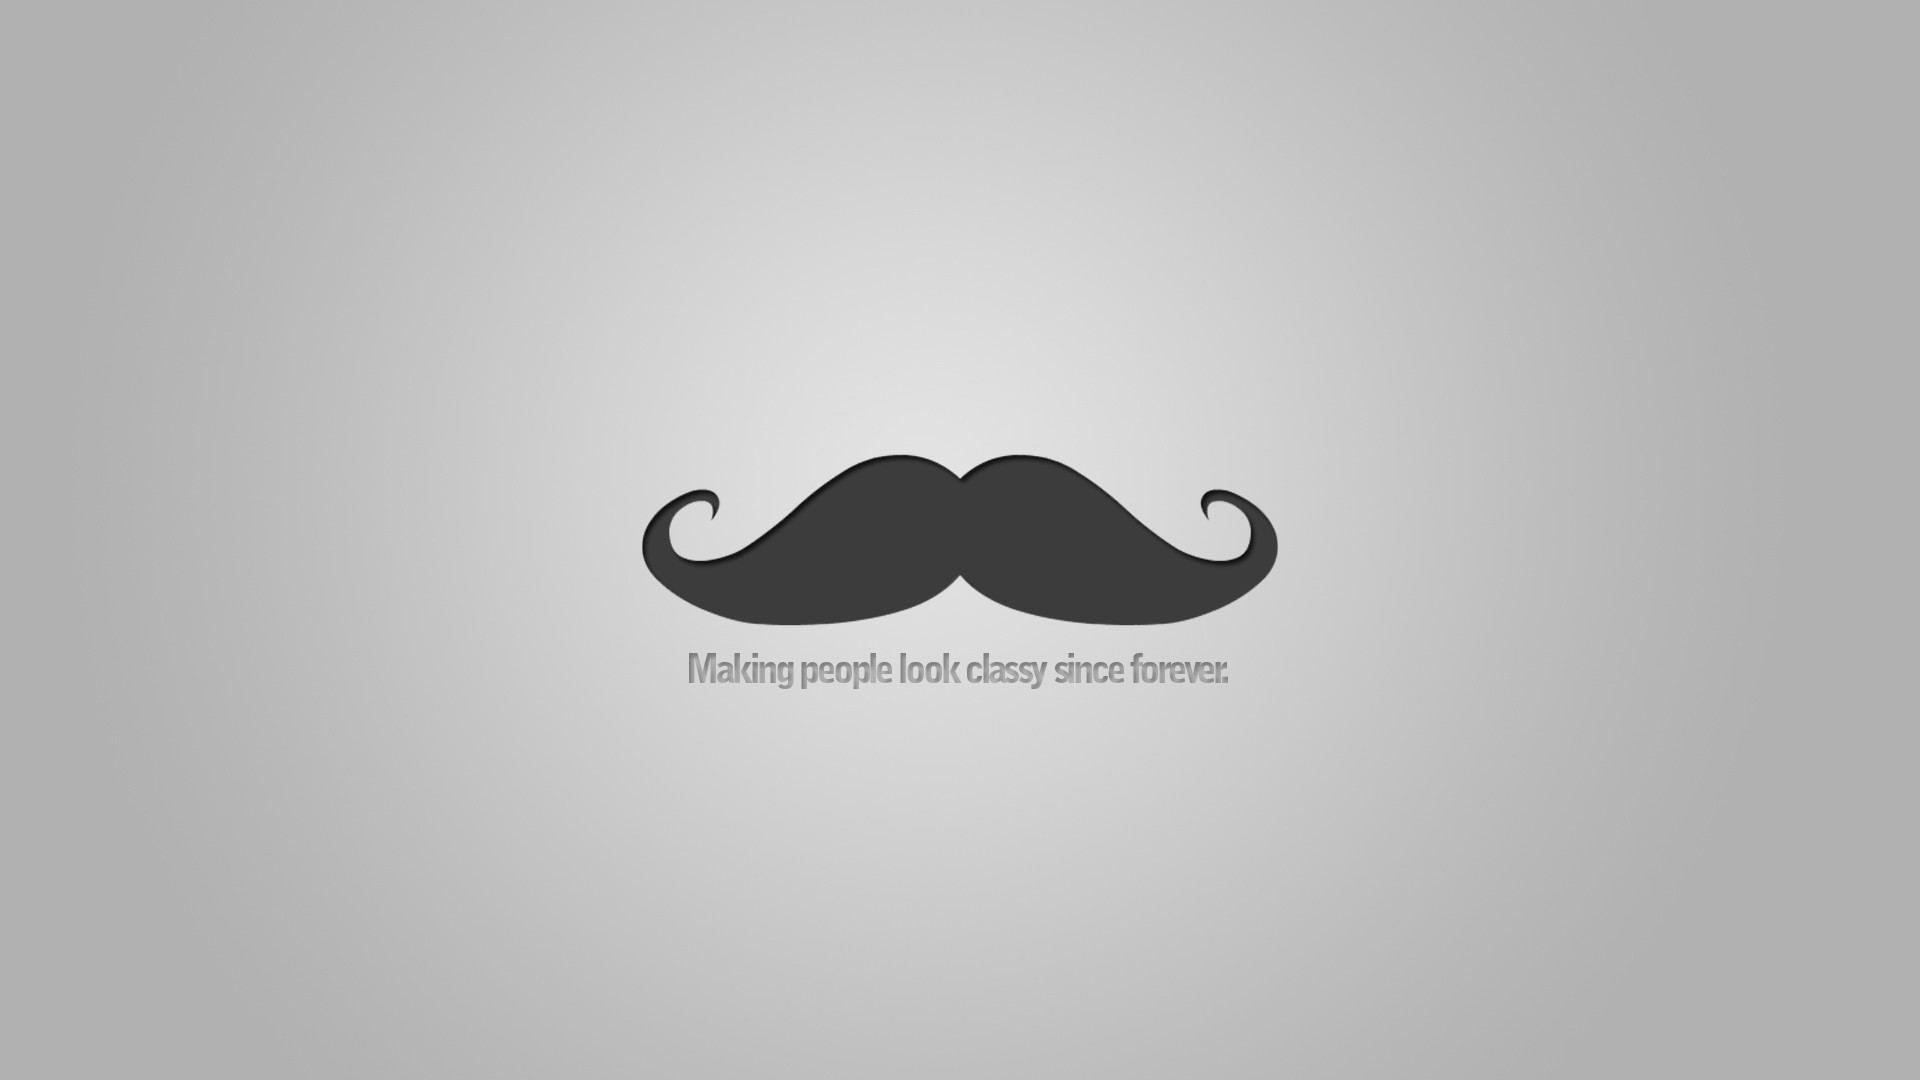 Cute Mustache Wallpaper Wallpaper Hipster Hd Gratuit 224 T 233 L 233 Charger Sur Ngn Mag